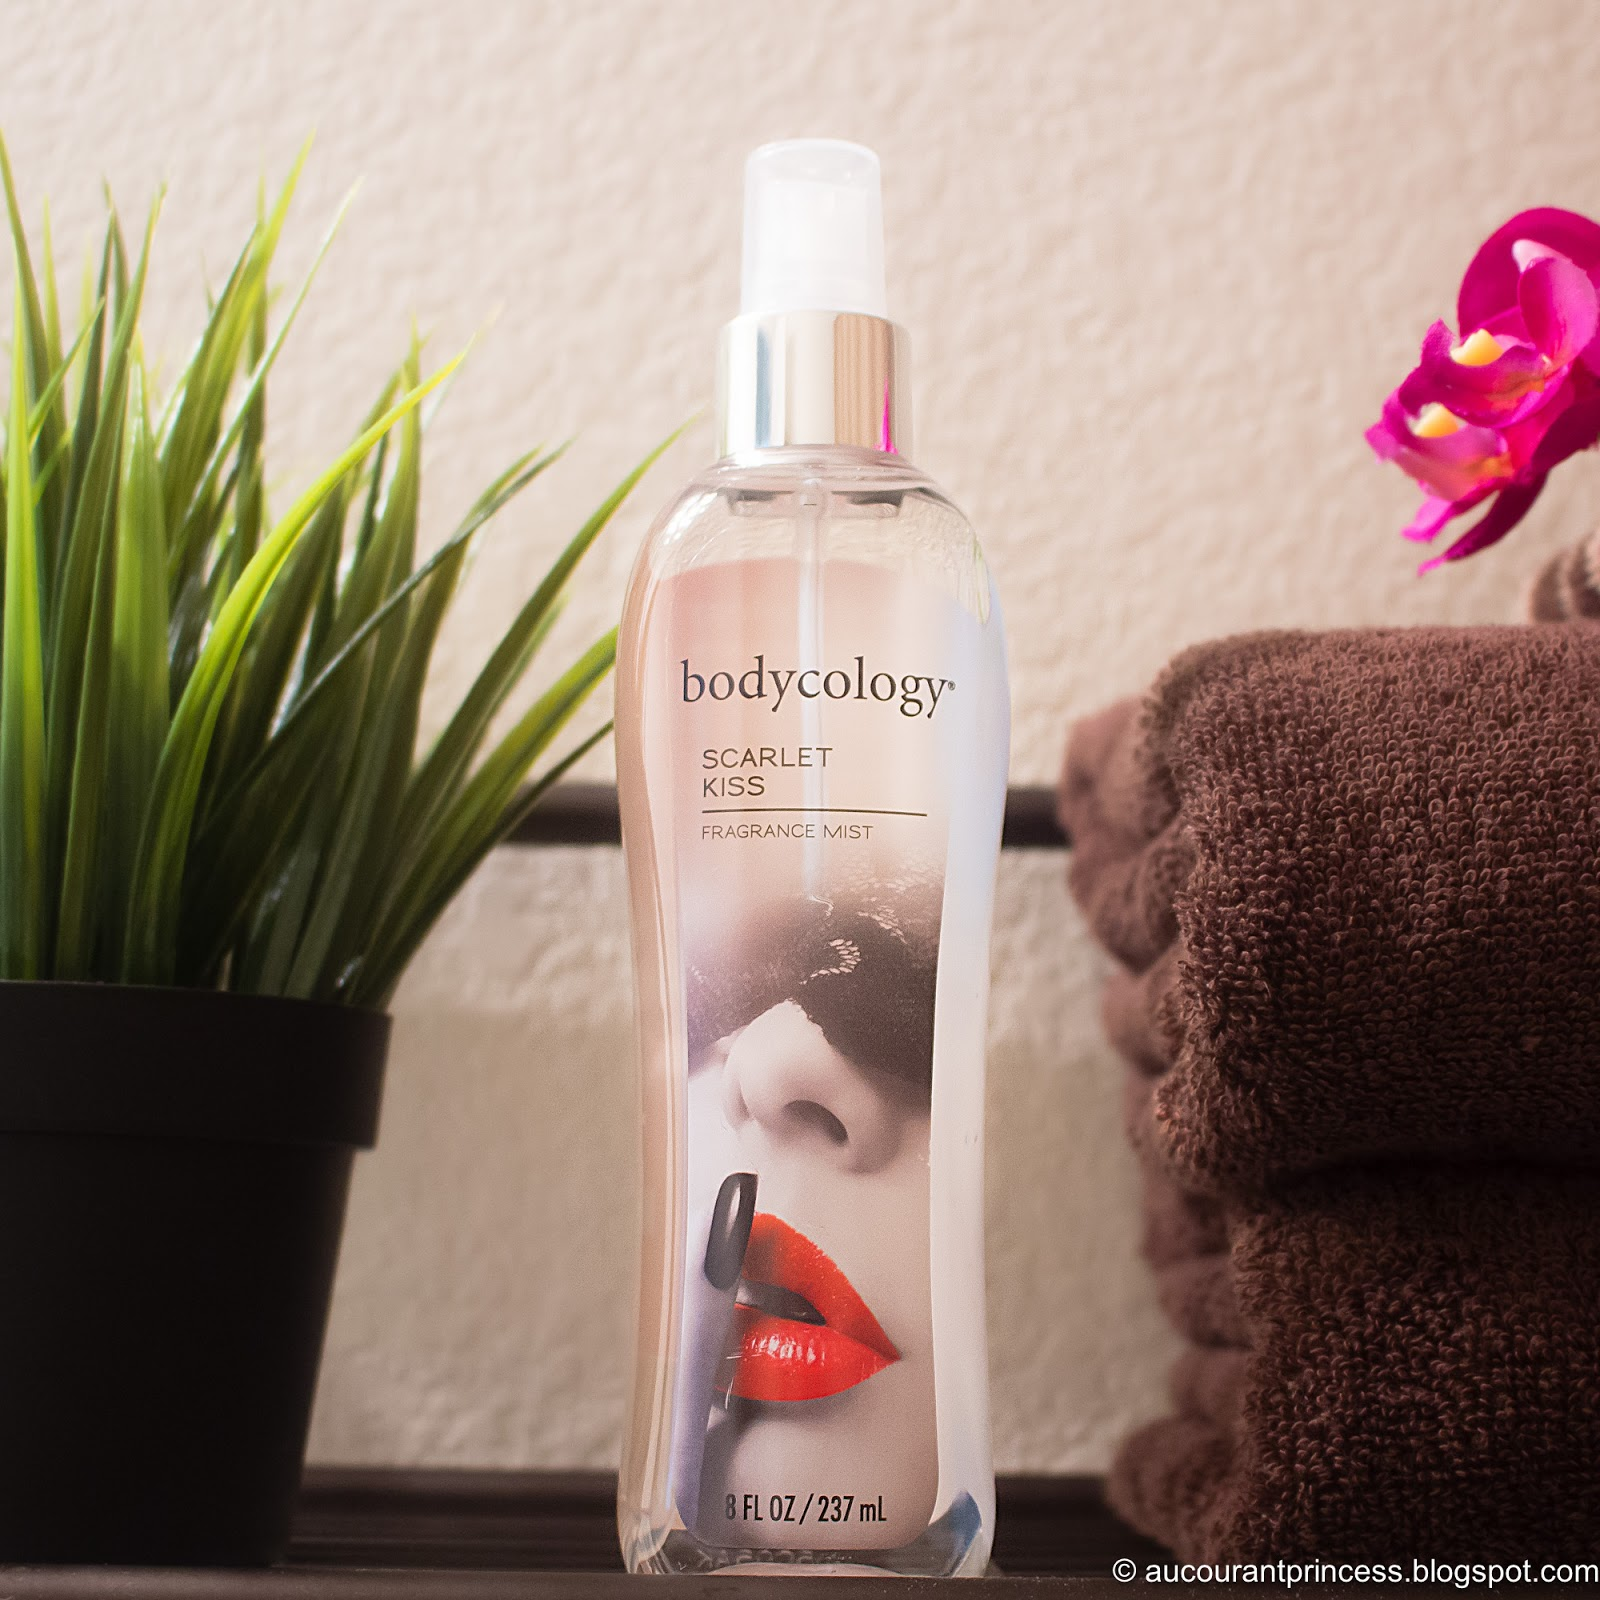 bodycology Fragrance Mist in Scarlet Kiss Product Review